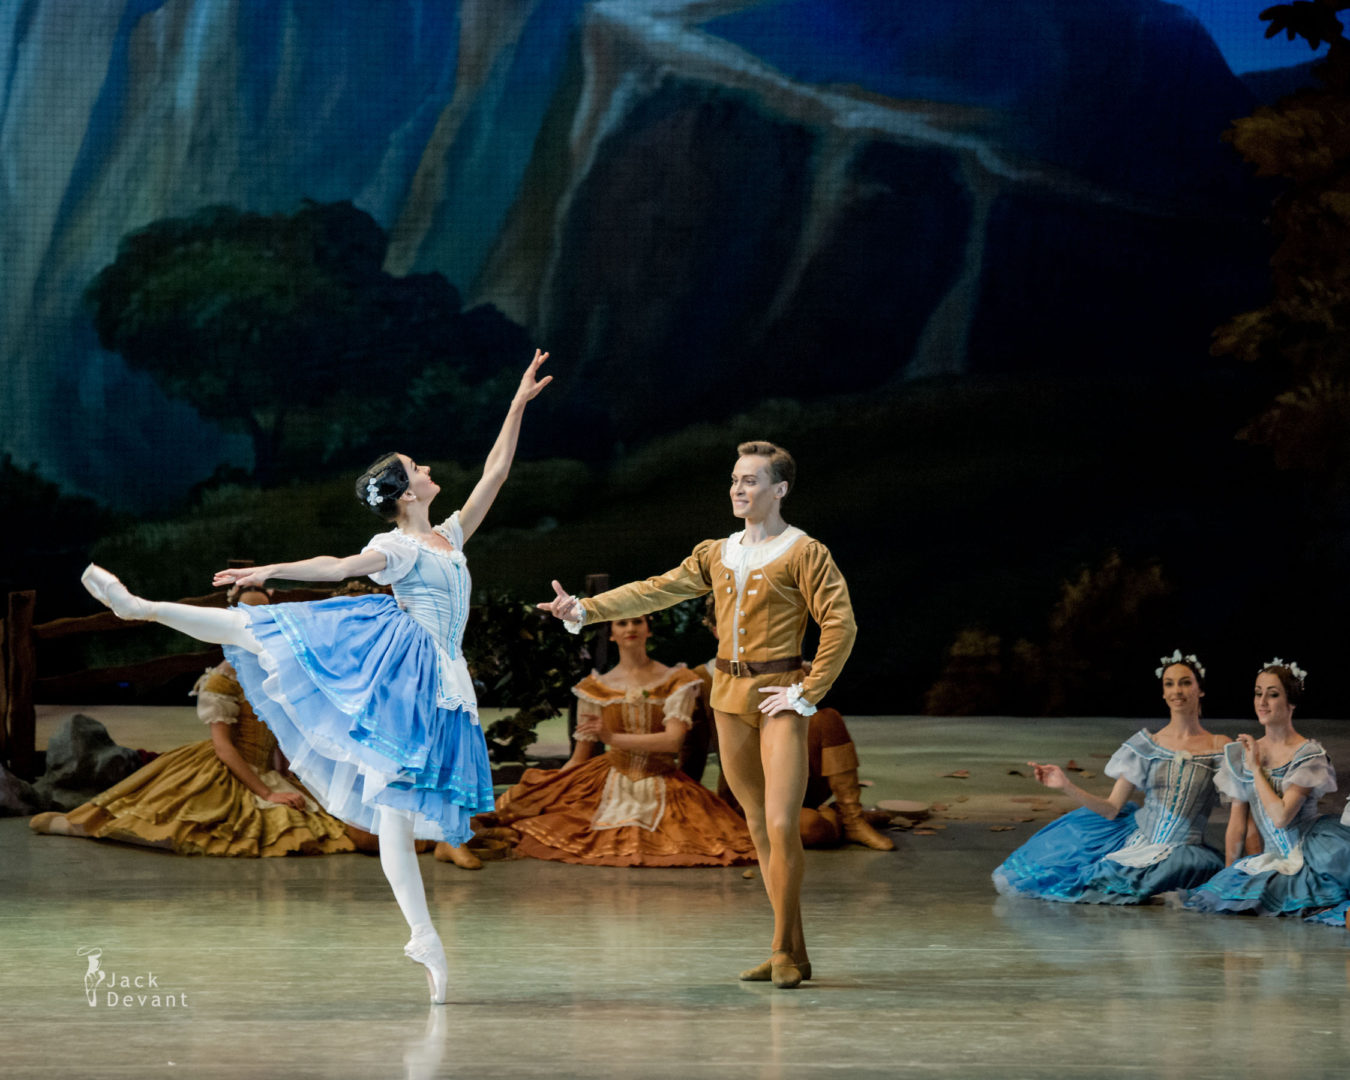 Anna Germizeeva Анна Гермизеева and Evgeny Basalyuk Евгений Басалюк in Peasant pas de deux from Giselle in The Novosibirsk Opera and Ballet Theatre